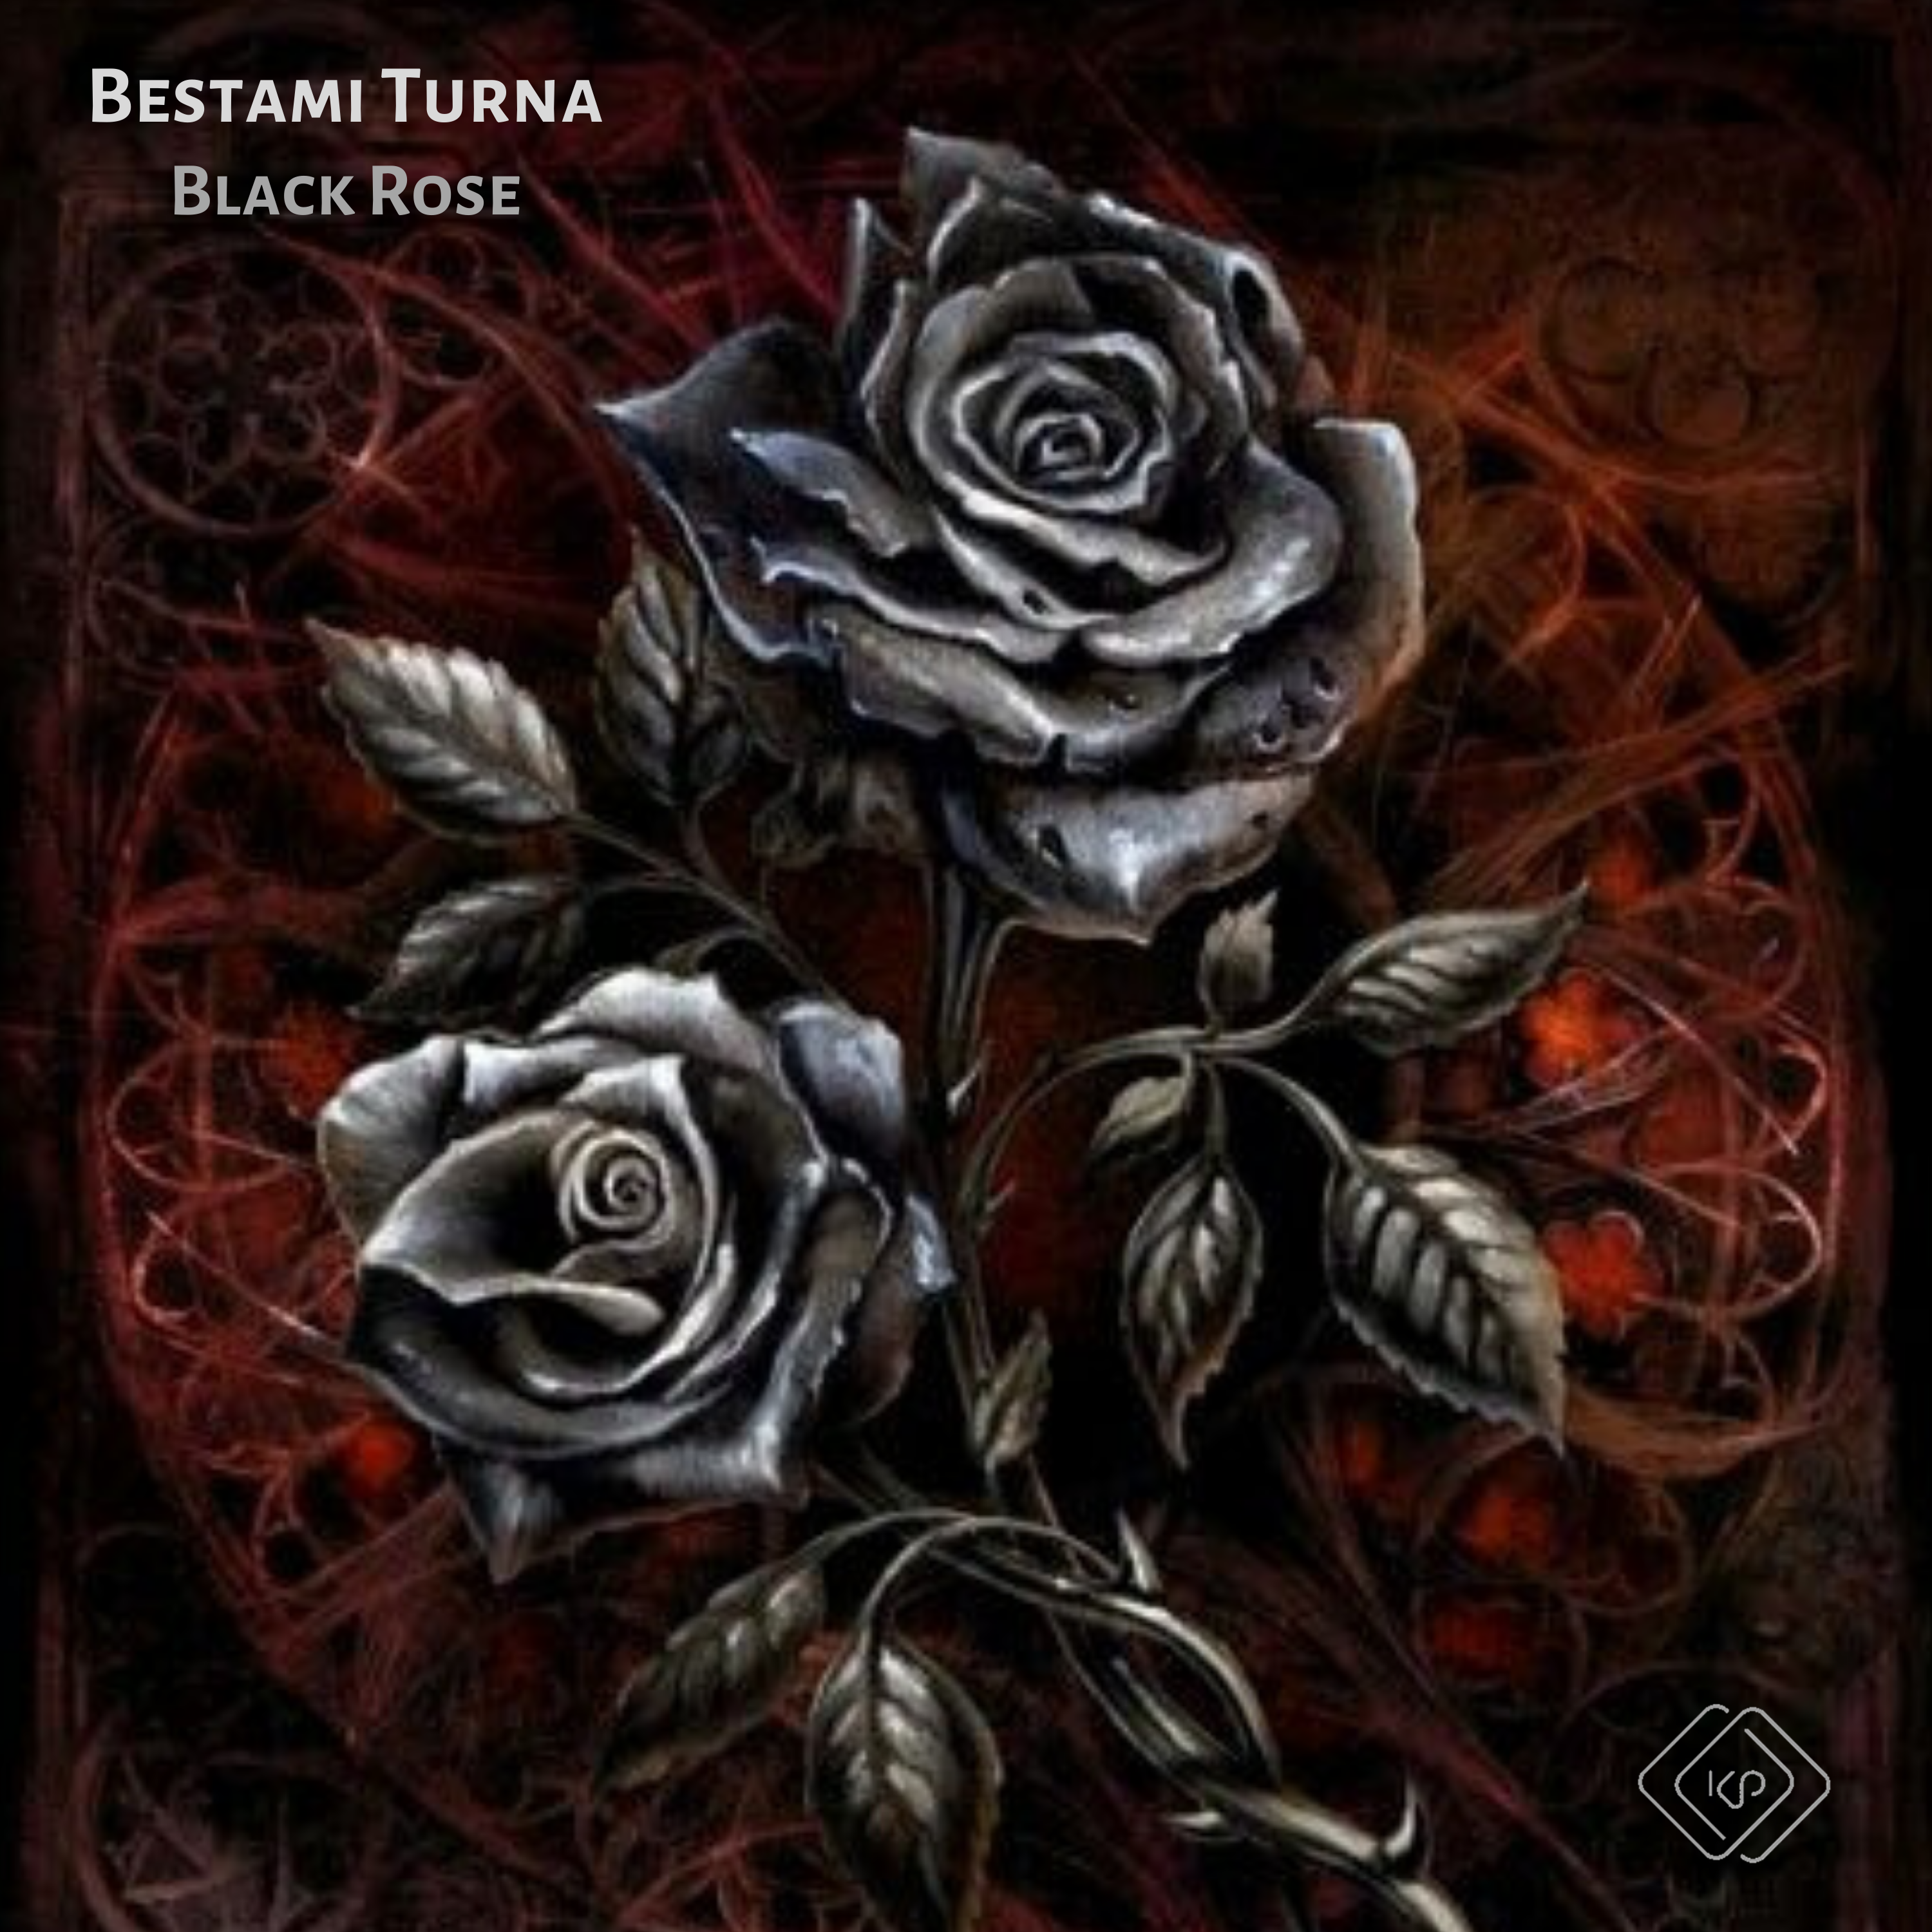 Bestami Turna returns to breathe life into original track 'Black Rose' Deep  Mix in 2020 | Gothic wallpaper, Alchemy gothic art, Gothic images